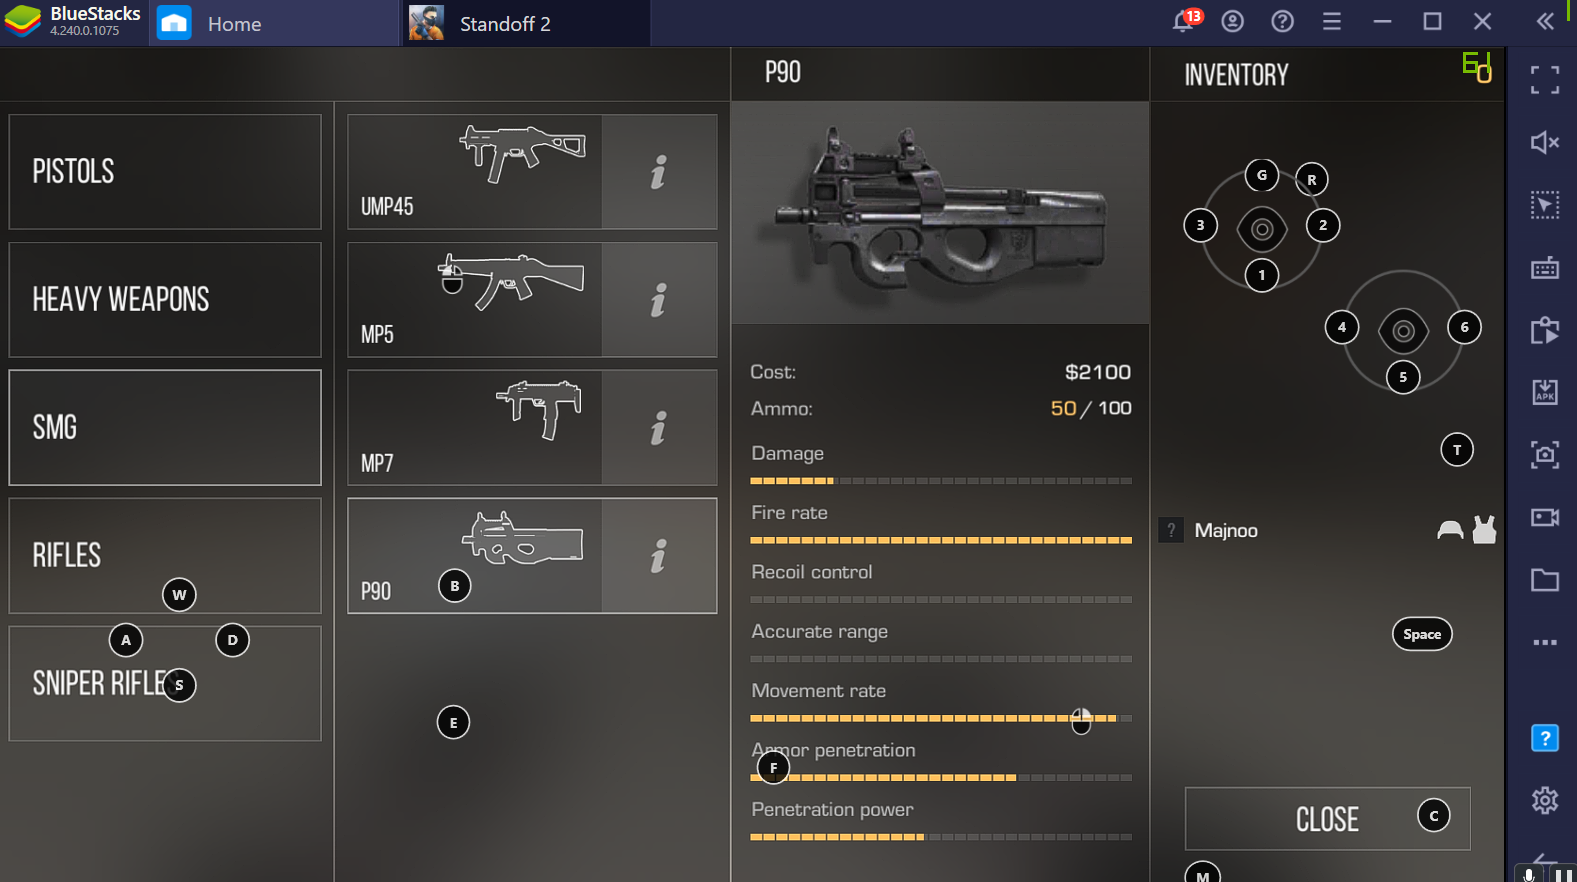 Lurker Guide for Standoff 2 on PC with BlueStacks